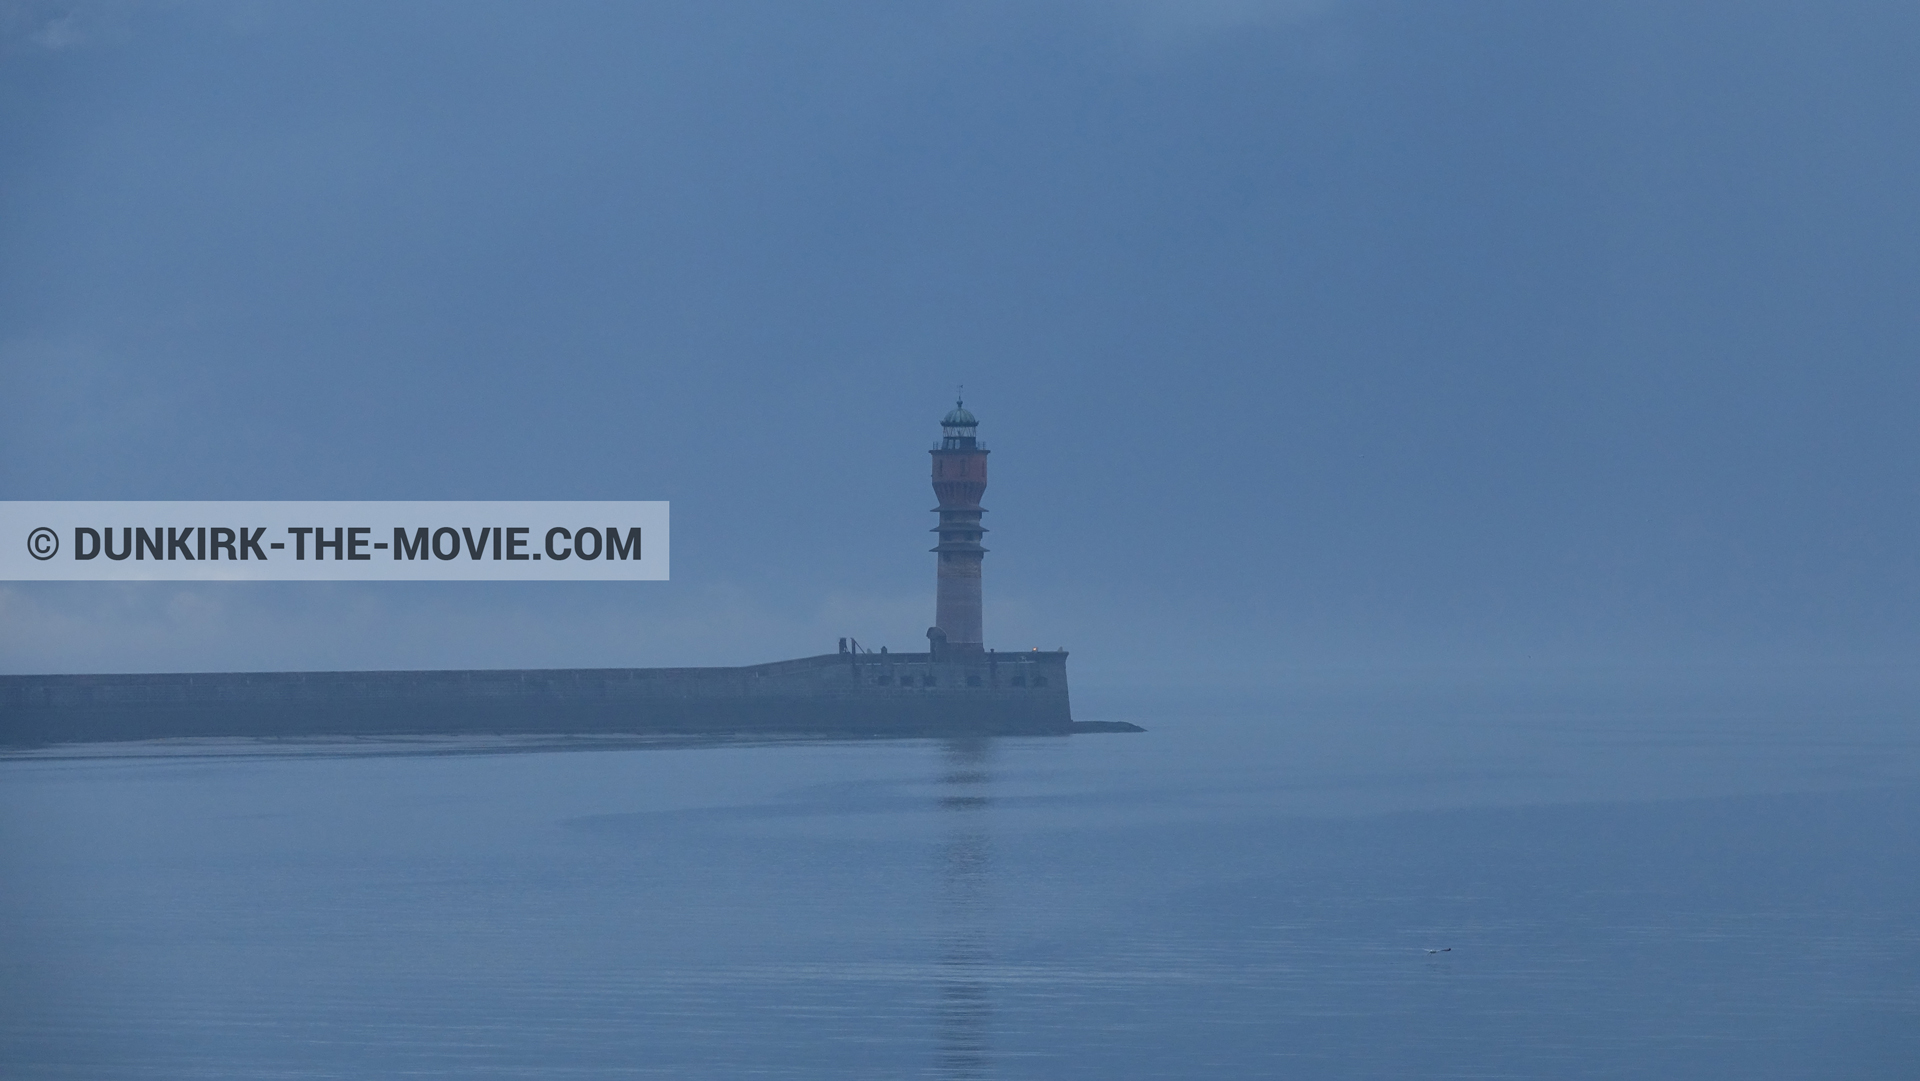 Picture with St Pol sur Mer lighthouse,  from behind the scene of the Dunkirk movie by Nolan